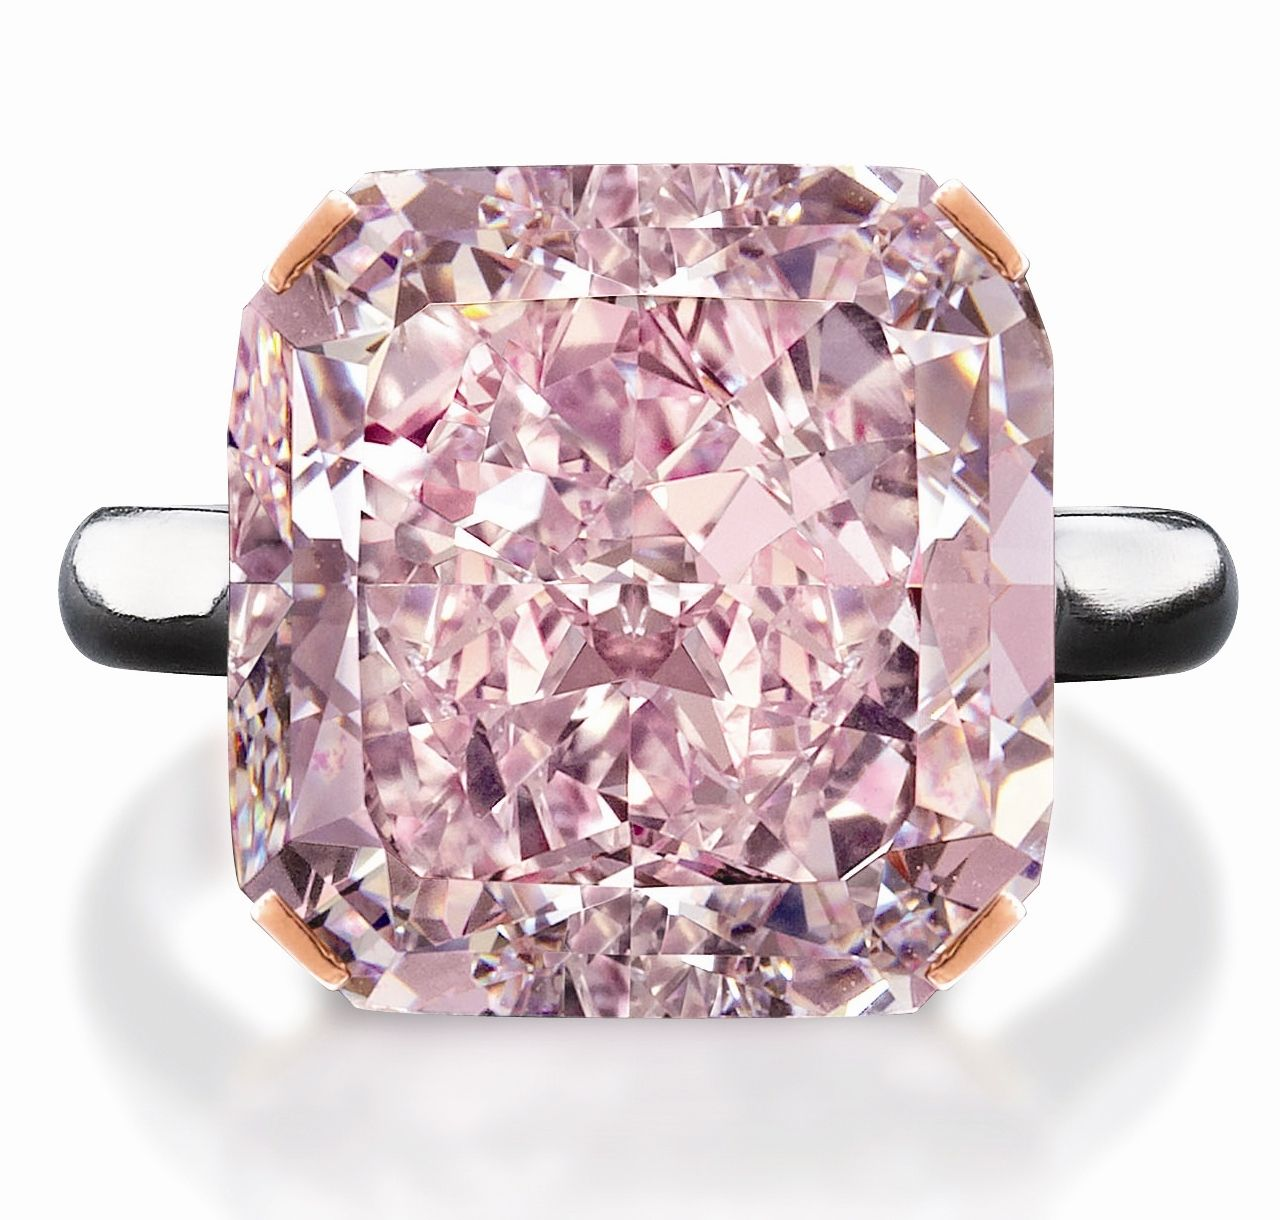 20 Carat Pink Diamond Ring | Ring | Pinterest | Pink diamond ring ...